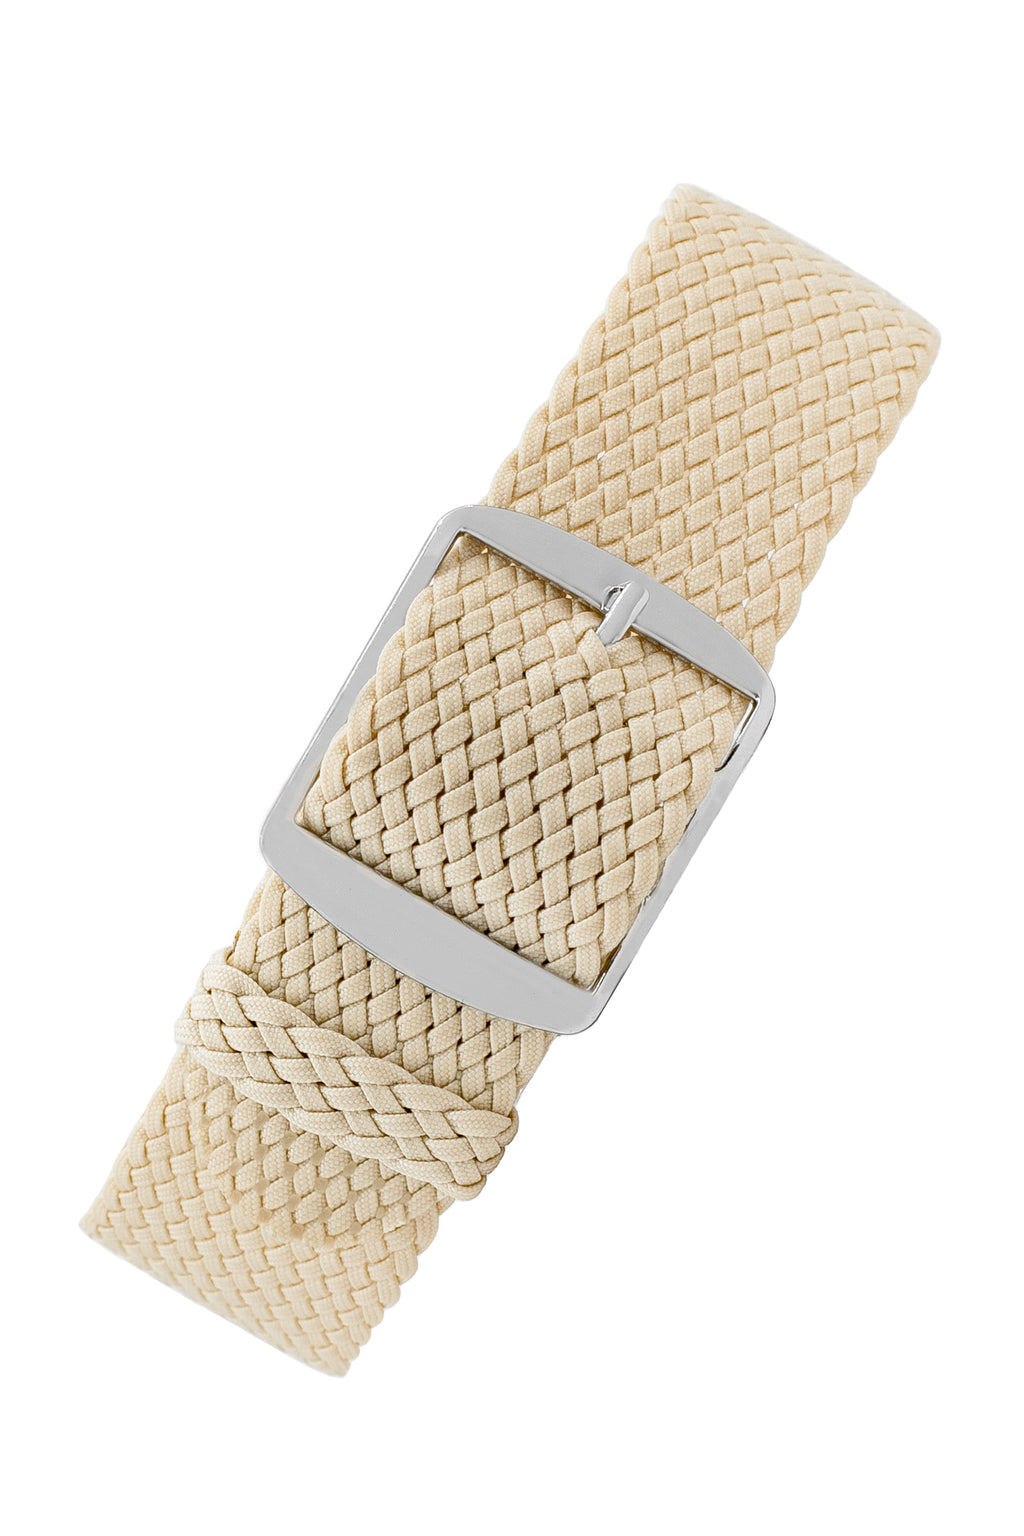 Perlon Braided One Piece Watch Strap & Buckle in BEIGE